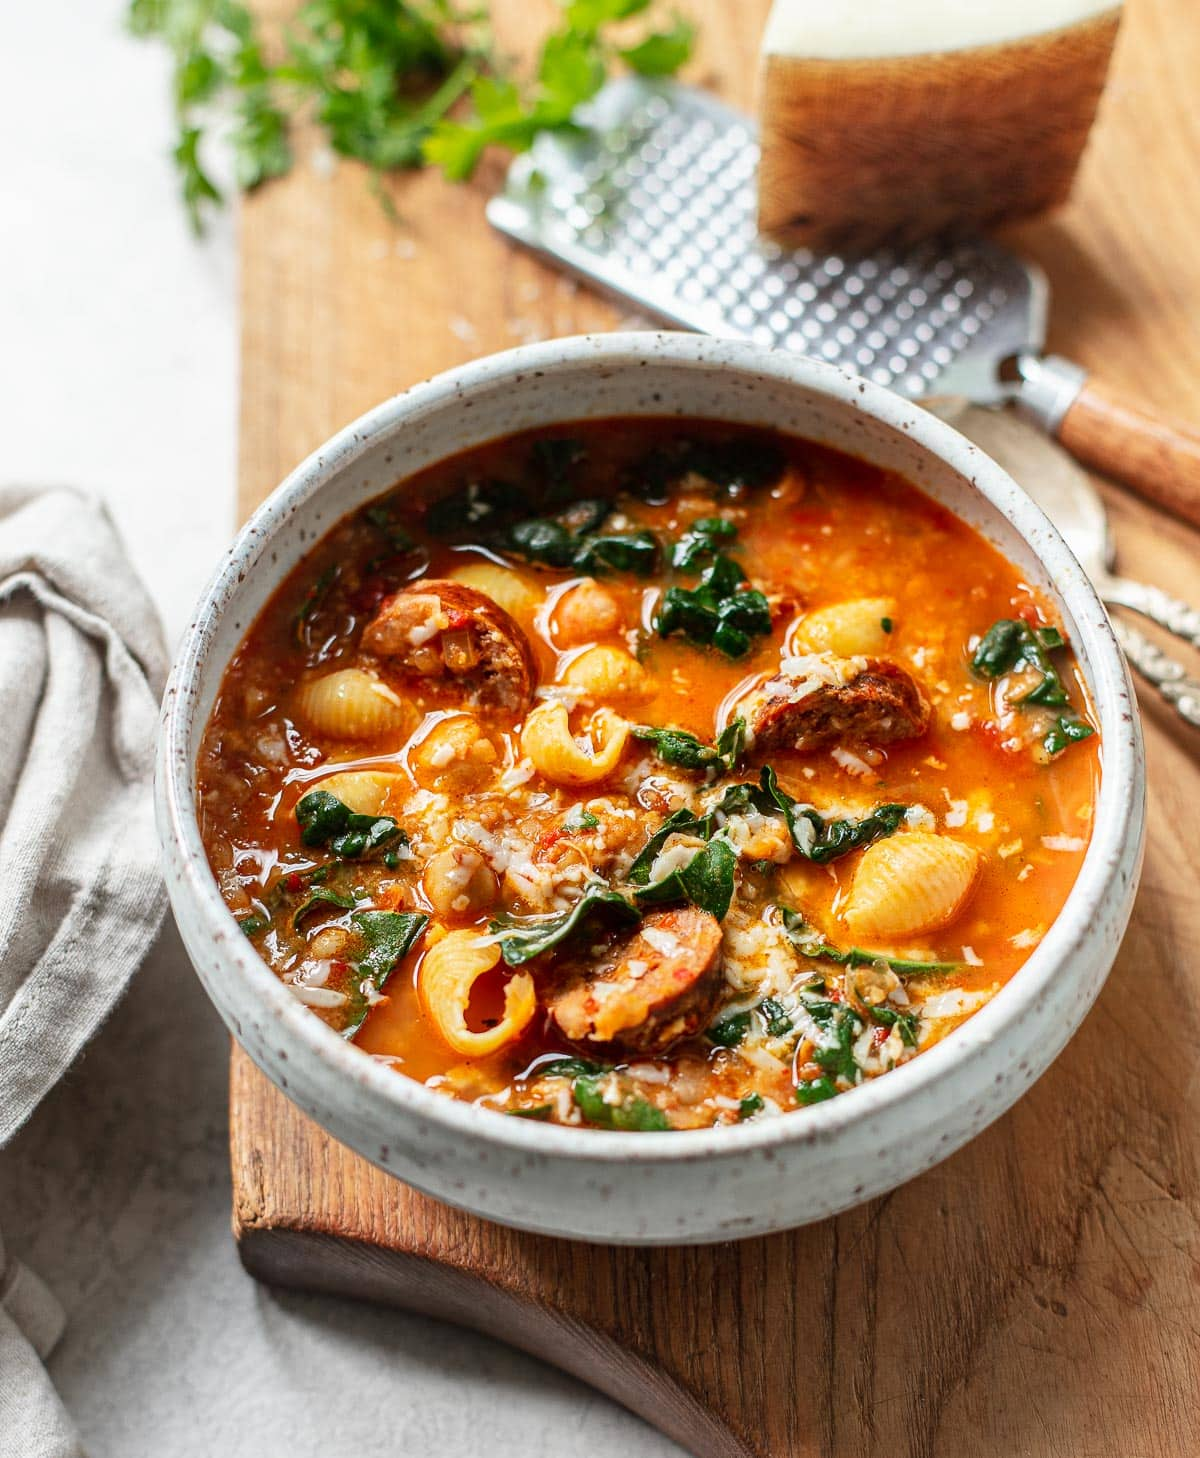 A gray bowl on a wooden cutting board filled with chunky garbanzo bean soup with chorizo, kale and shredded cheese.